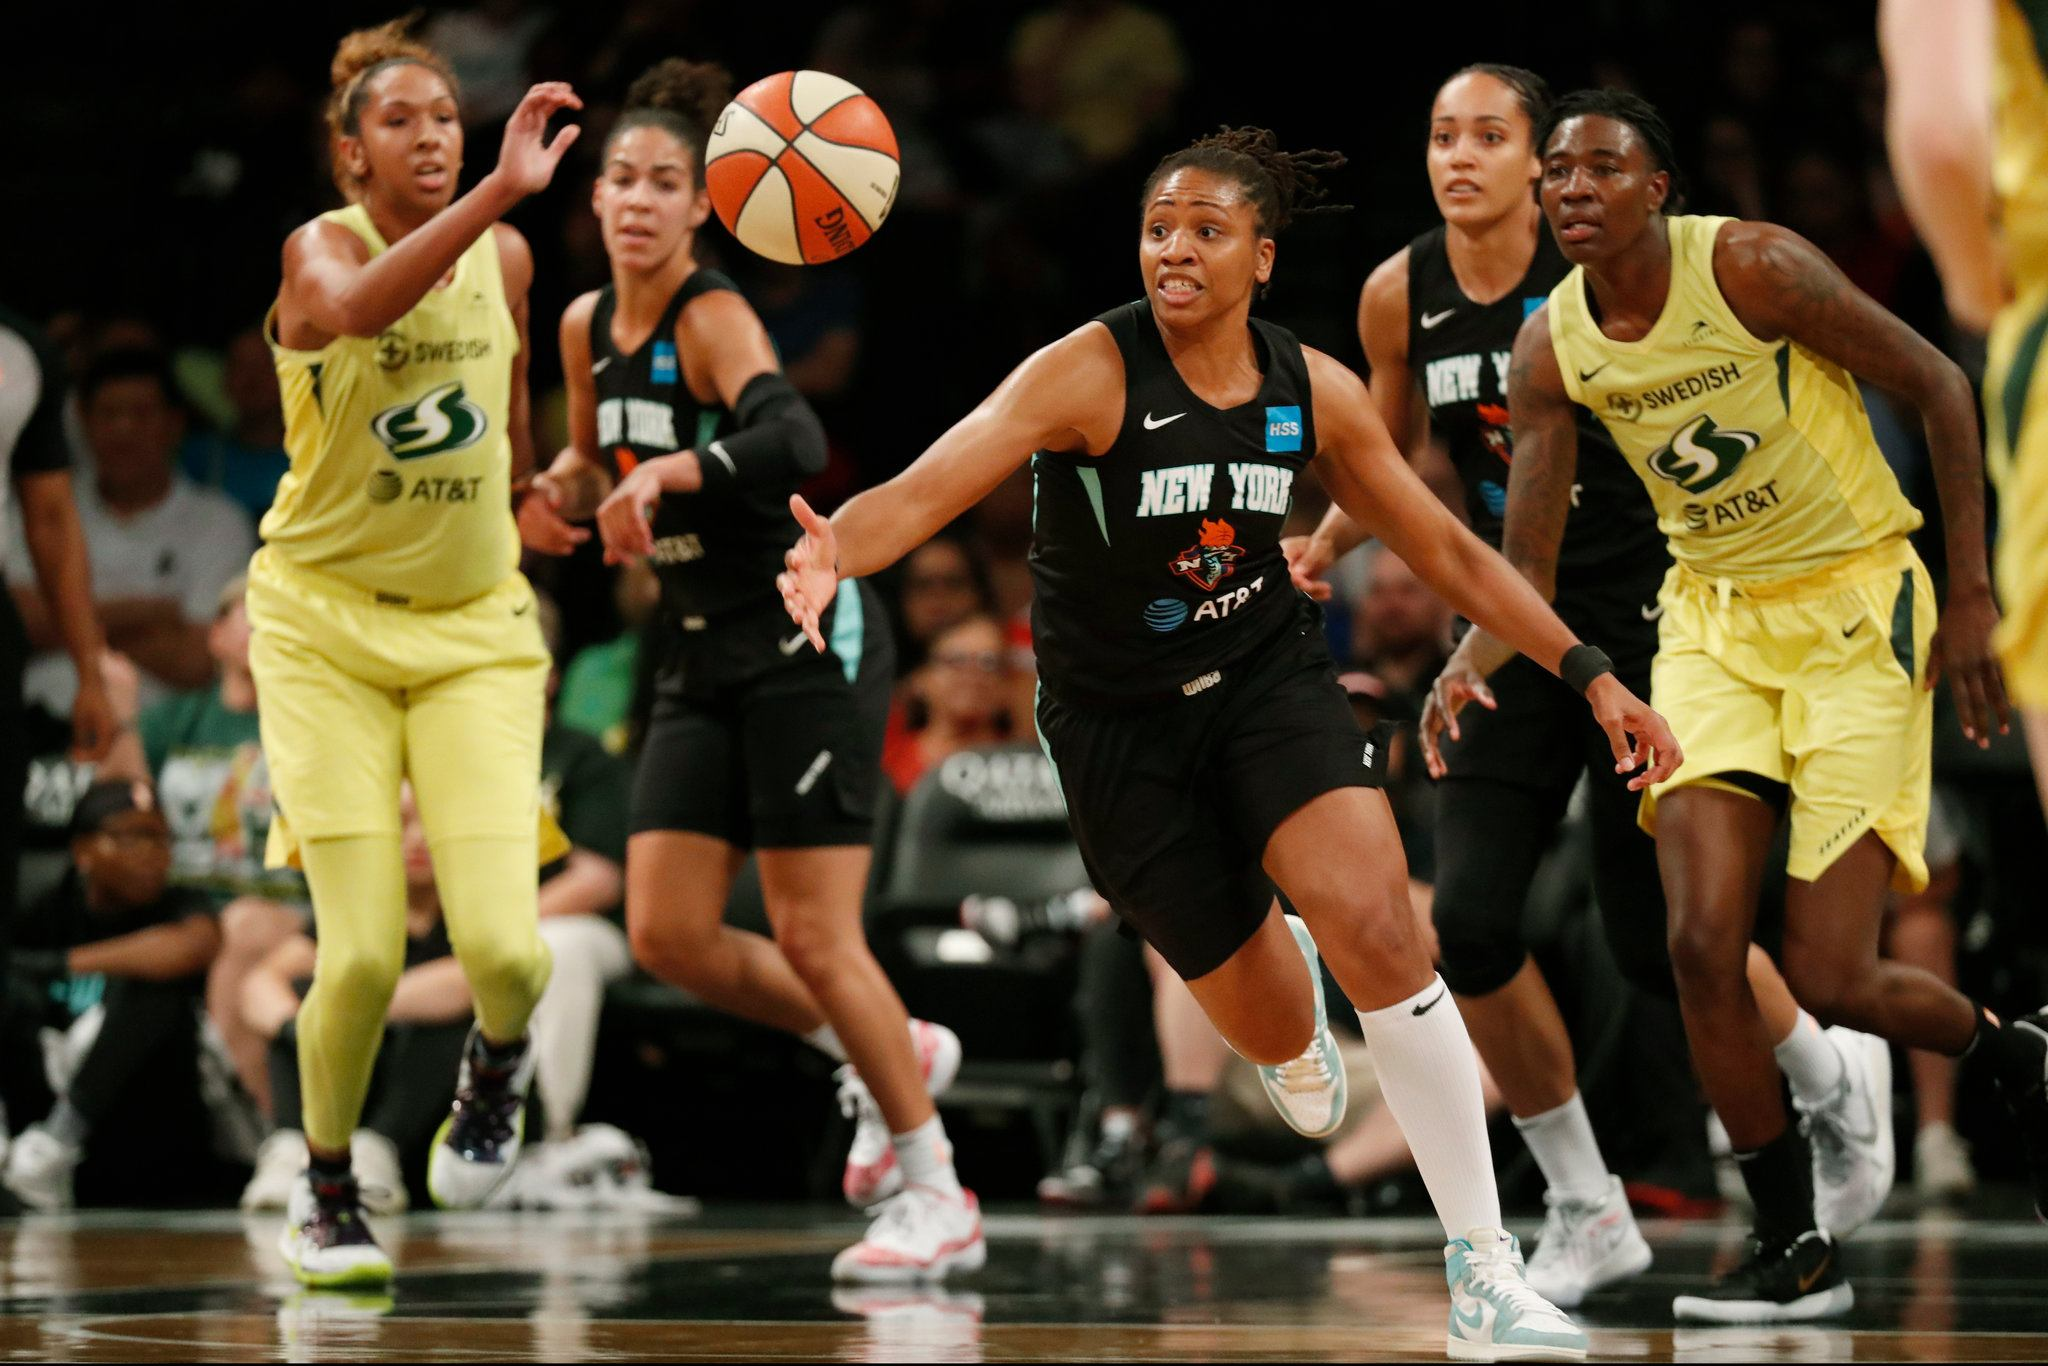 Seattle Storm and New York Liberty play the first game of the 2020 WNBA schedule